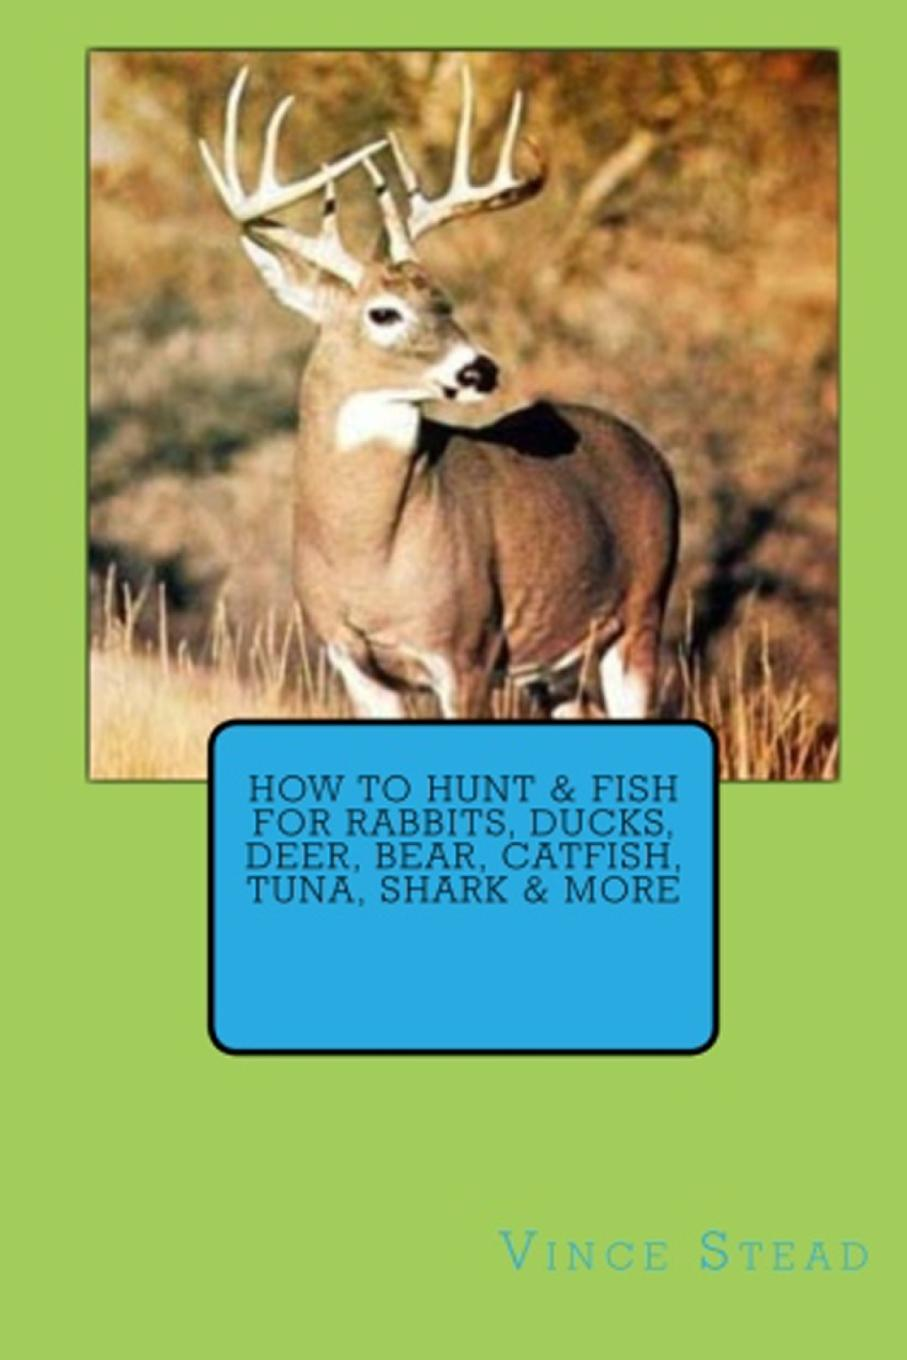 Vince Stead How to Hunt . Fish for Rabbits, Ducks, Deer, Bear, Catfish, Tuna, Shark . More pq30rv11 to 220f